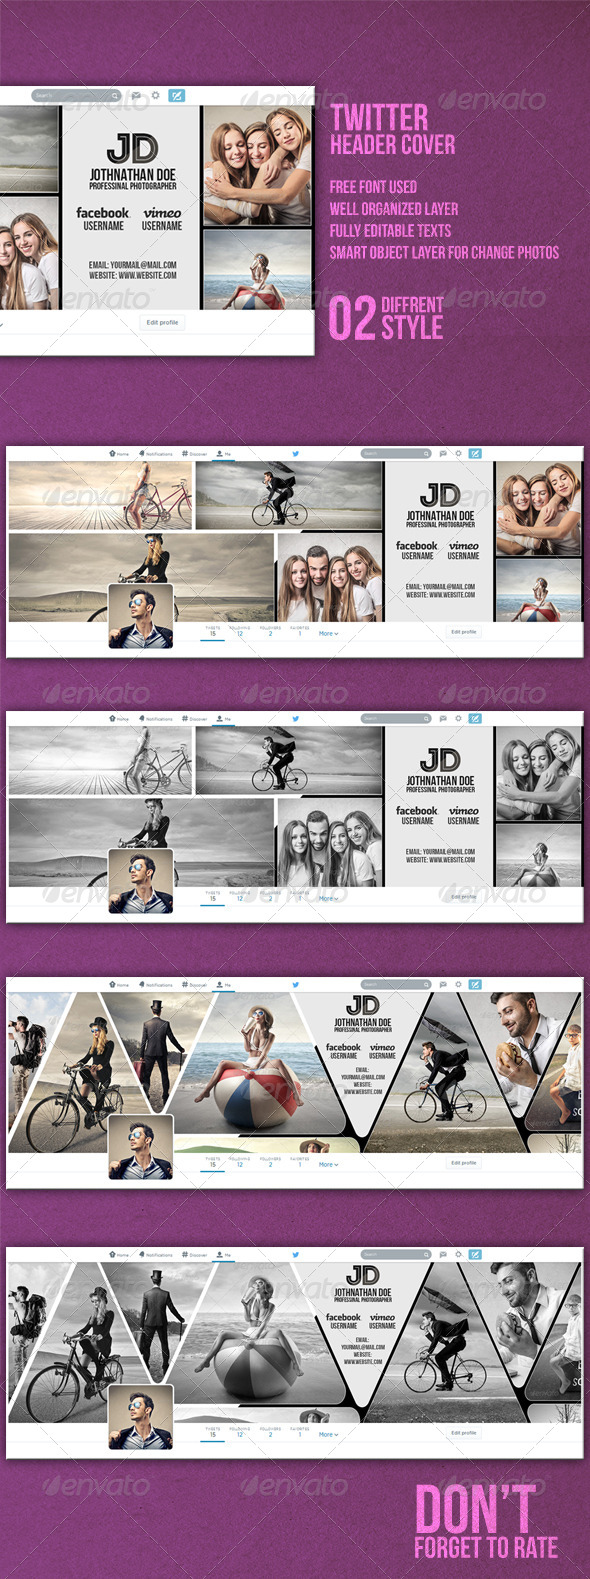 GraphicRiver Twitter Header Cover 8151019